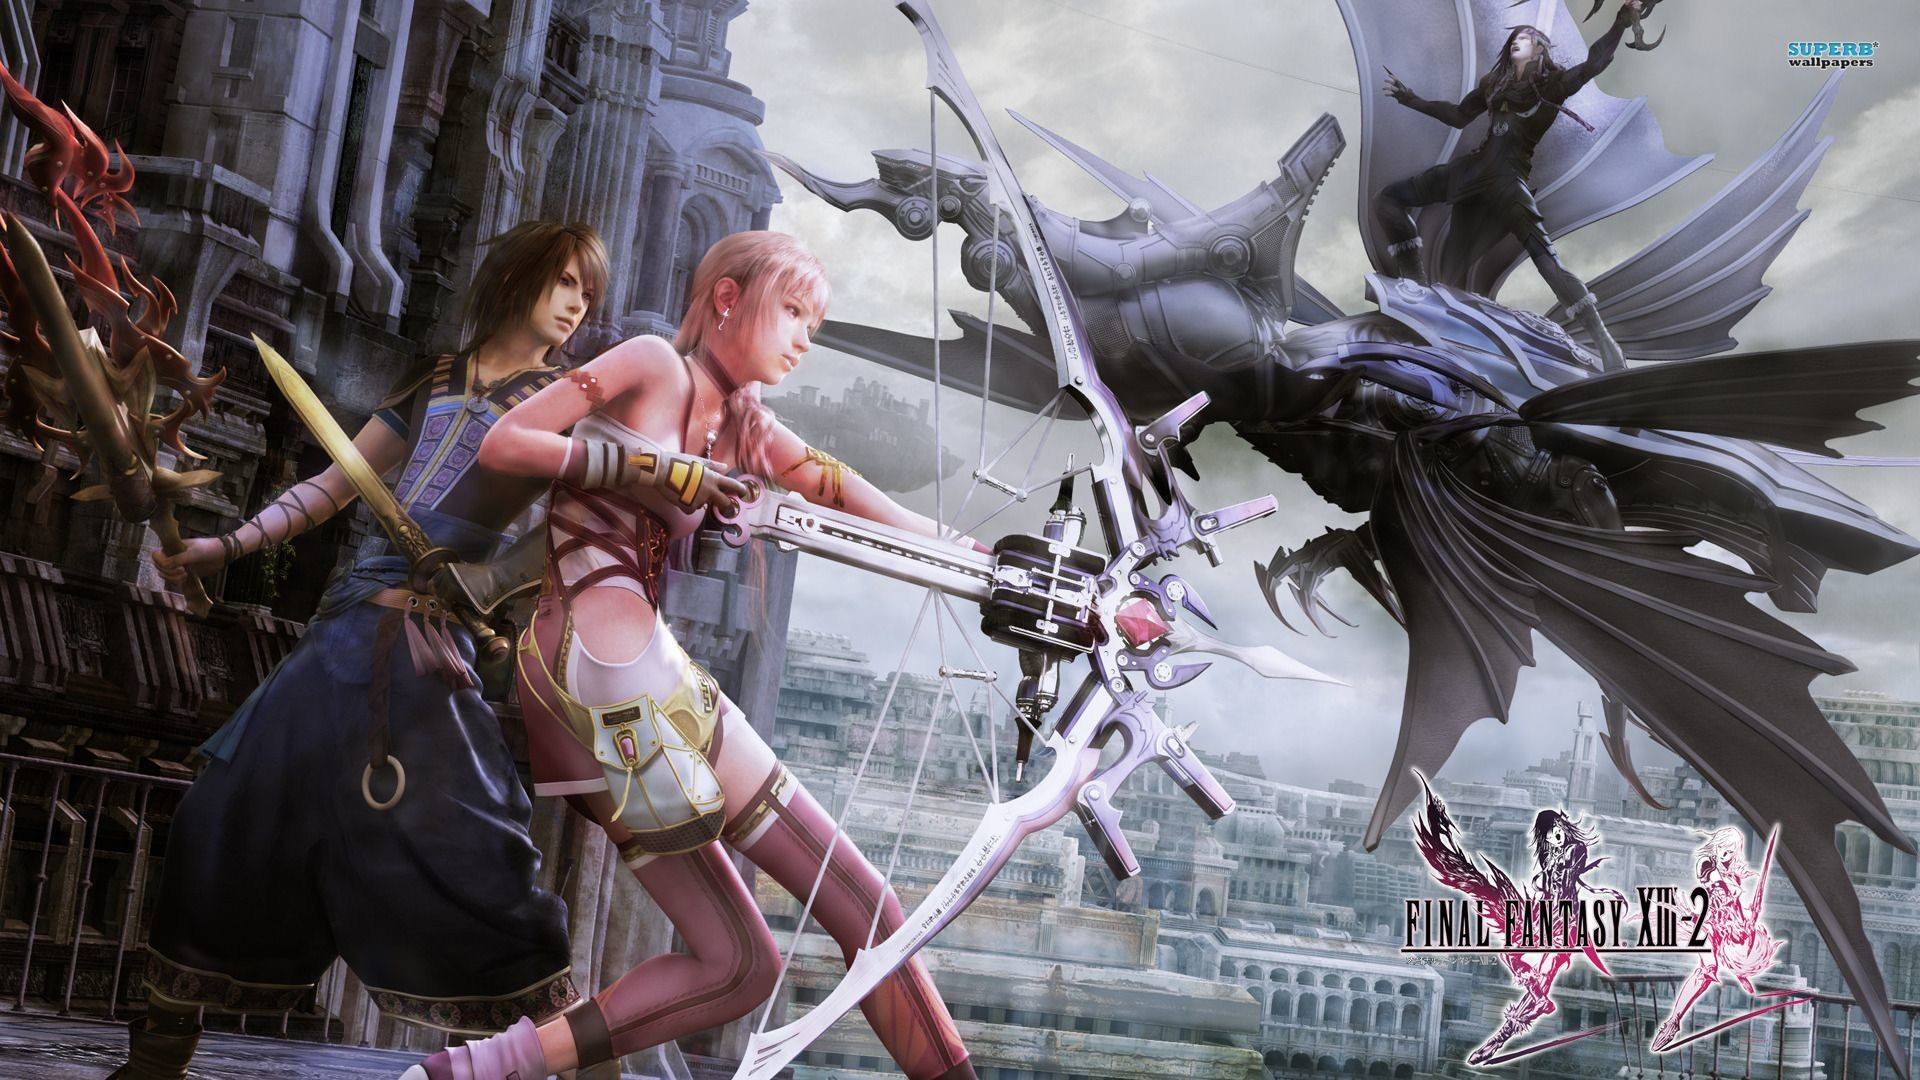 1920x1080 Serah, Noel and Caius- Final Fantasy XIII-2 wallpaper